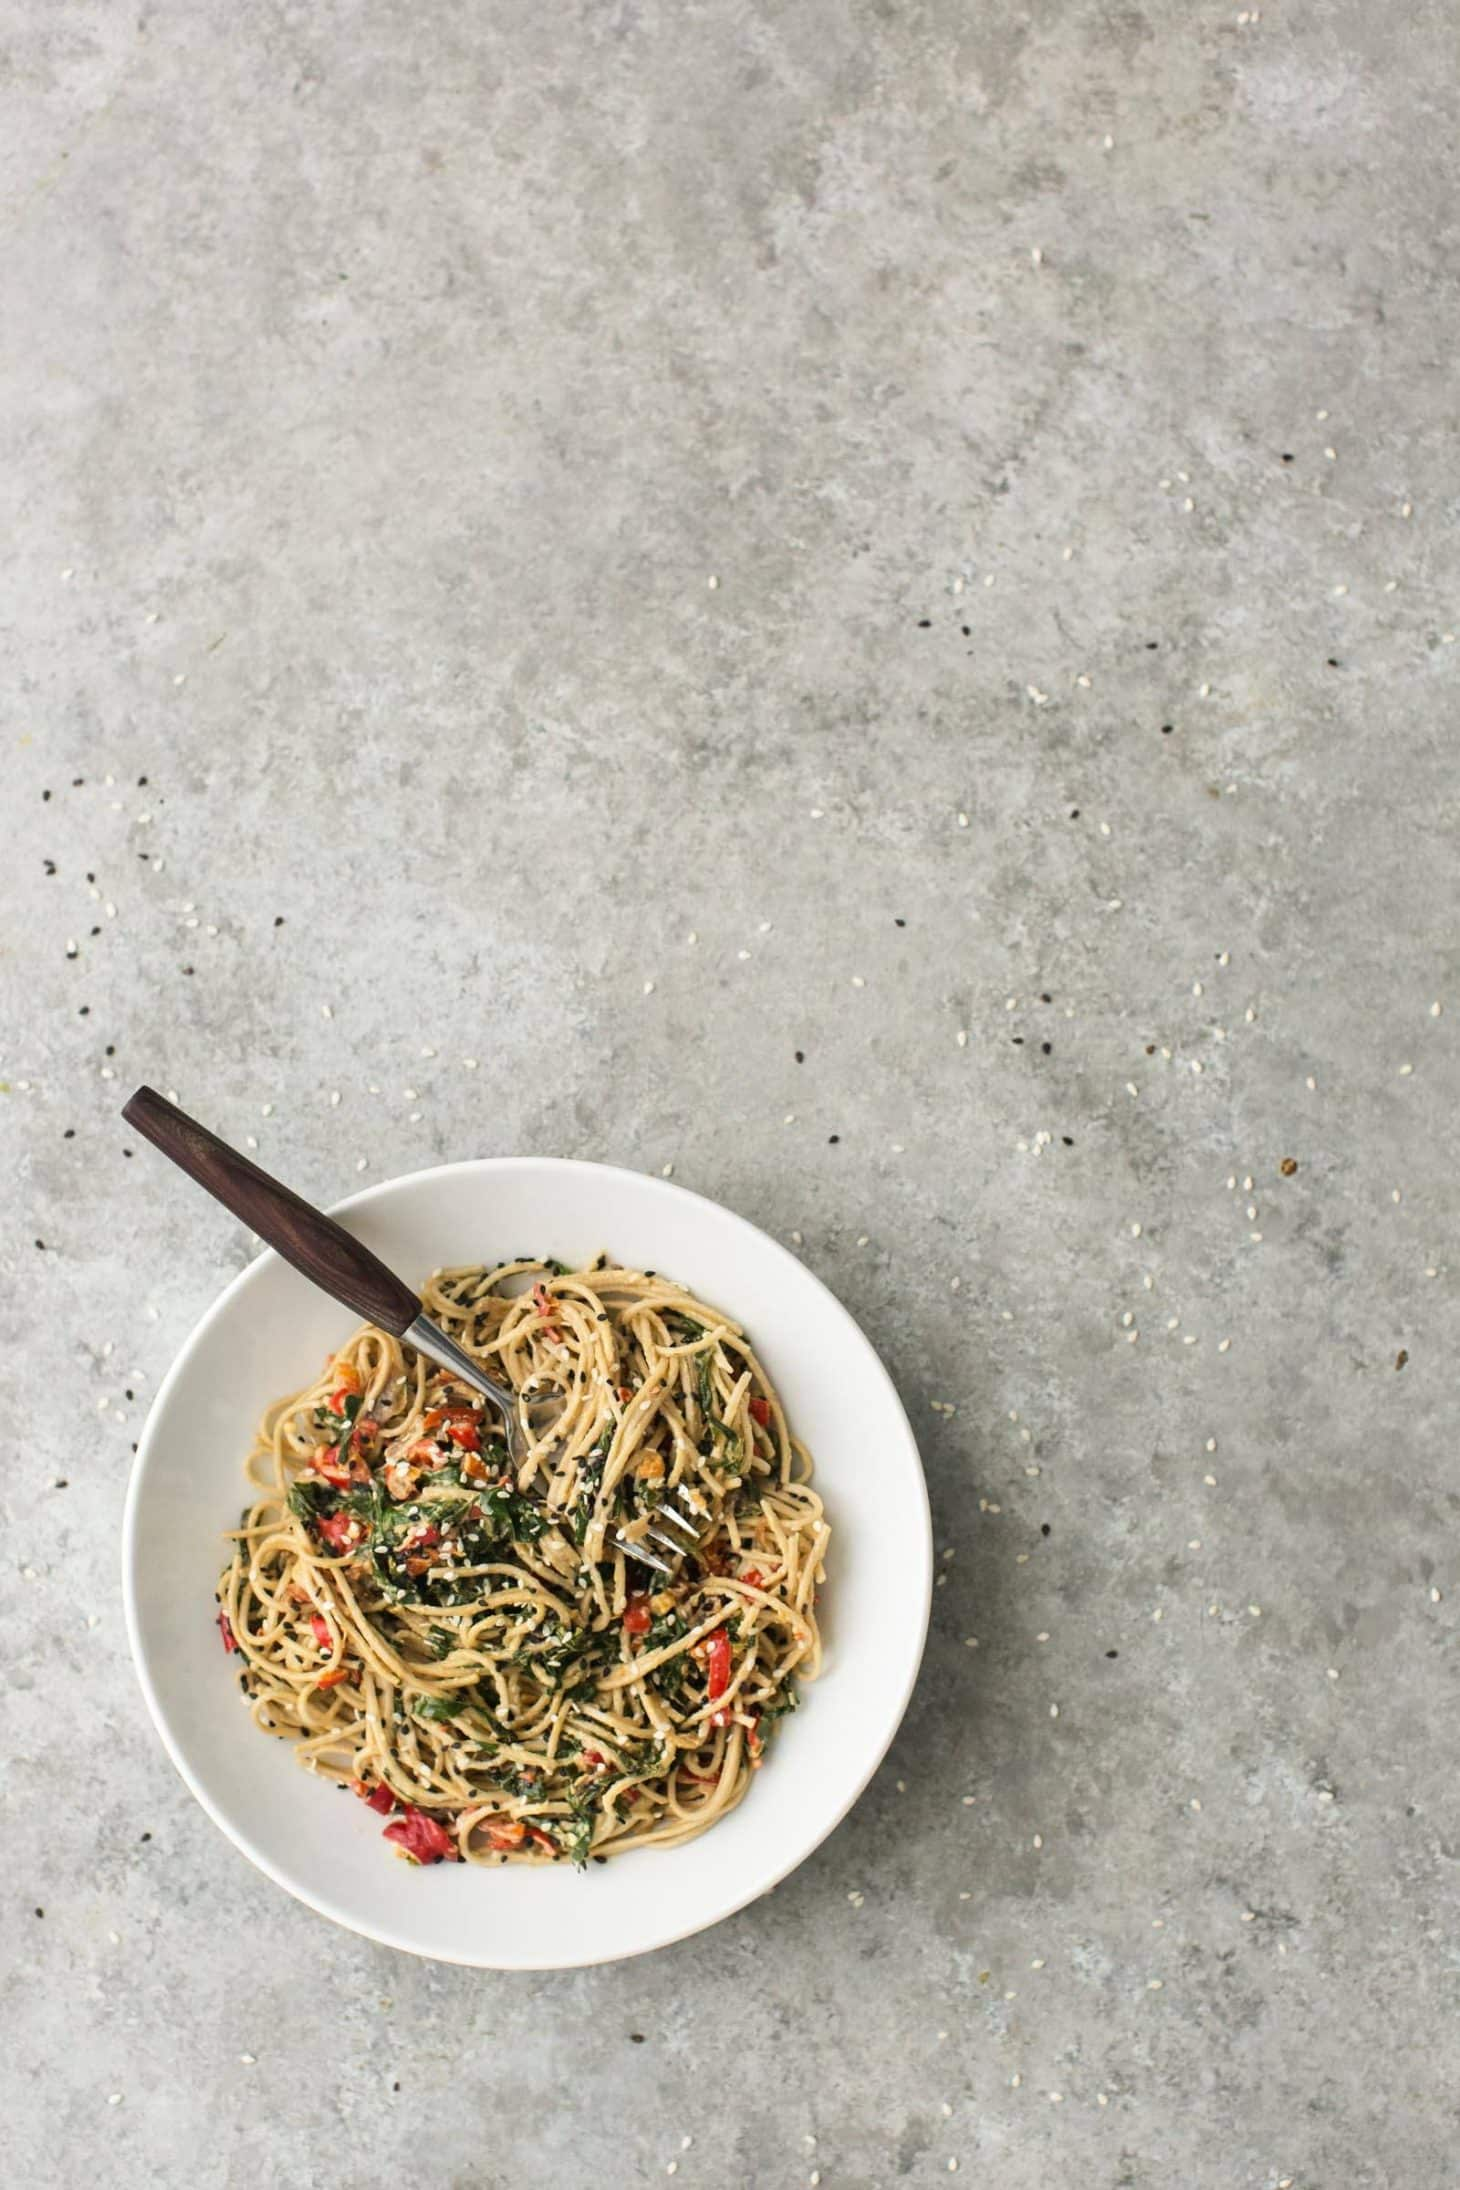 Tahini Noodle Bowl with Collards and Red Peppers | @naturallyella